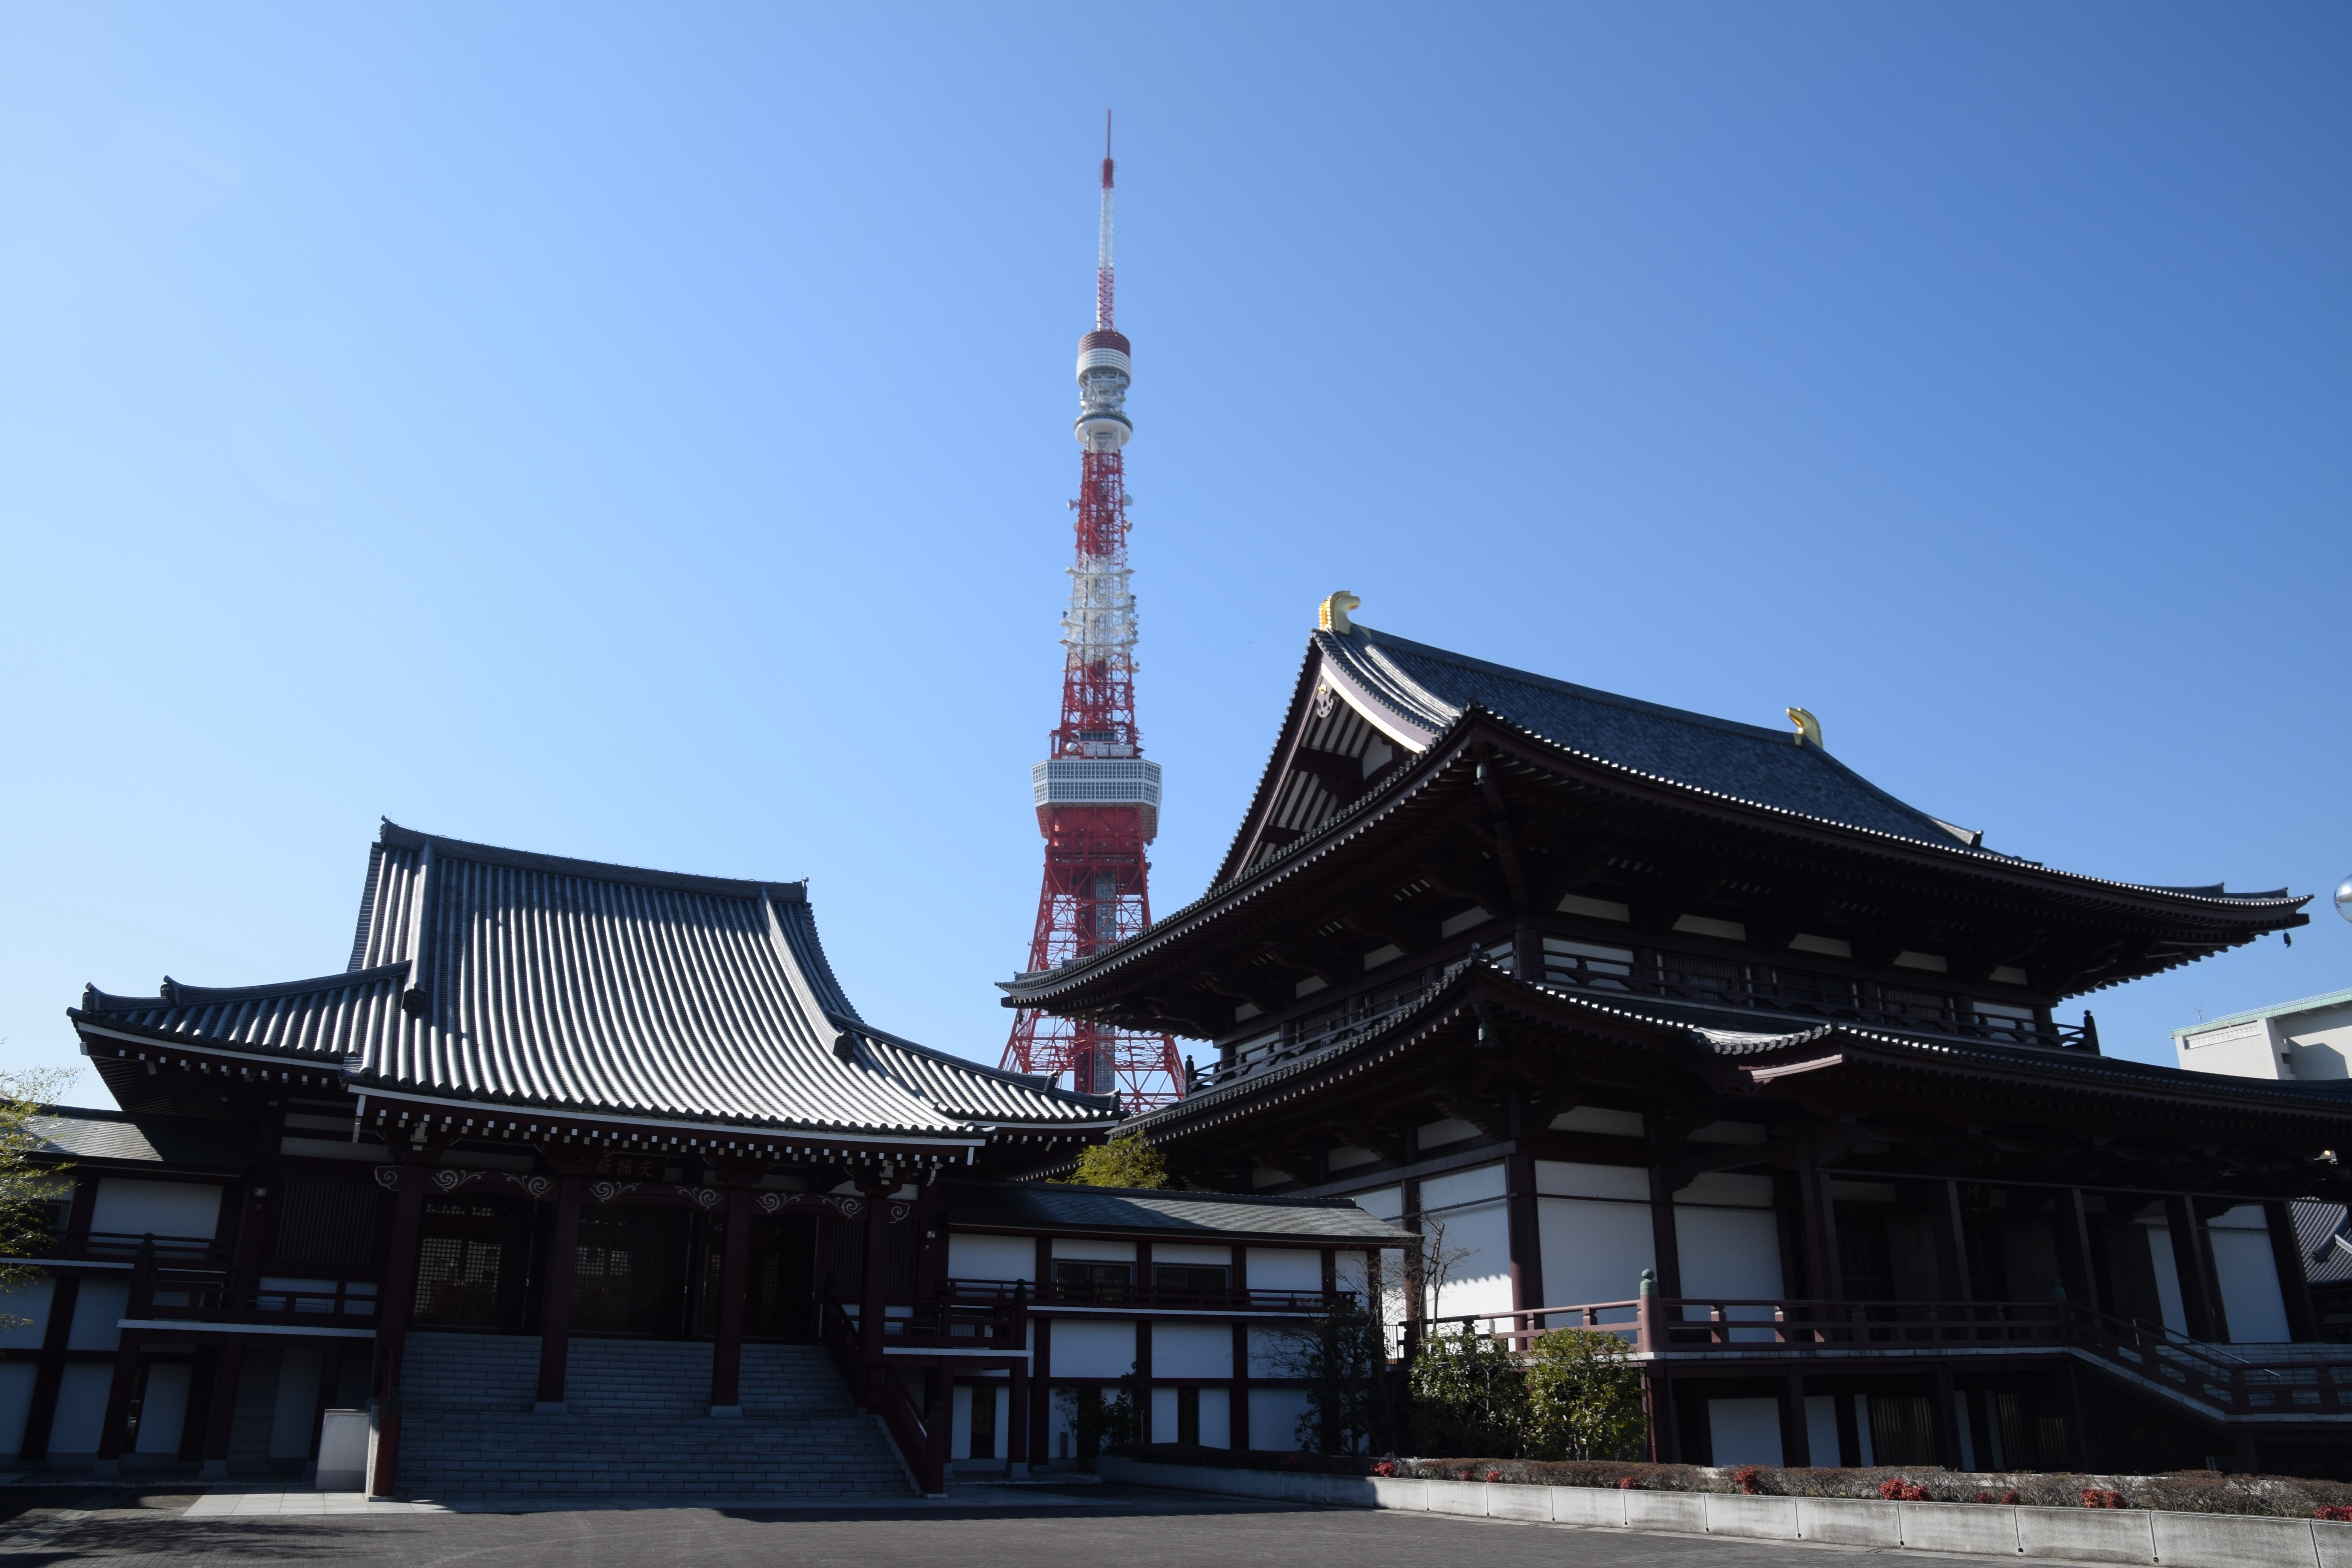 Tokyo tower behind black and white dojo building during daytime photo